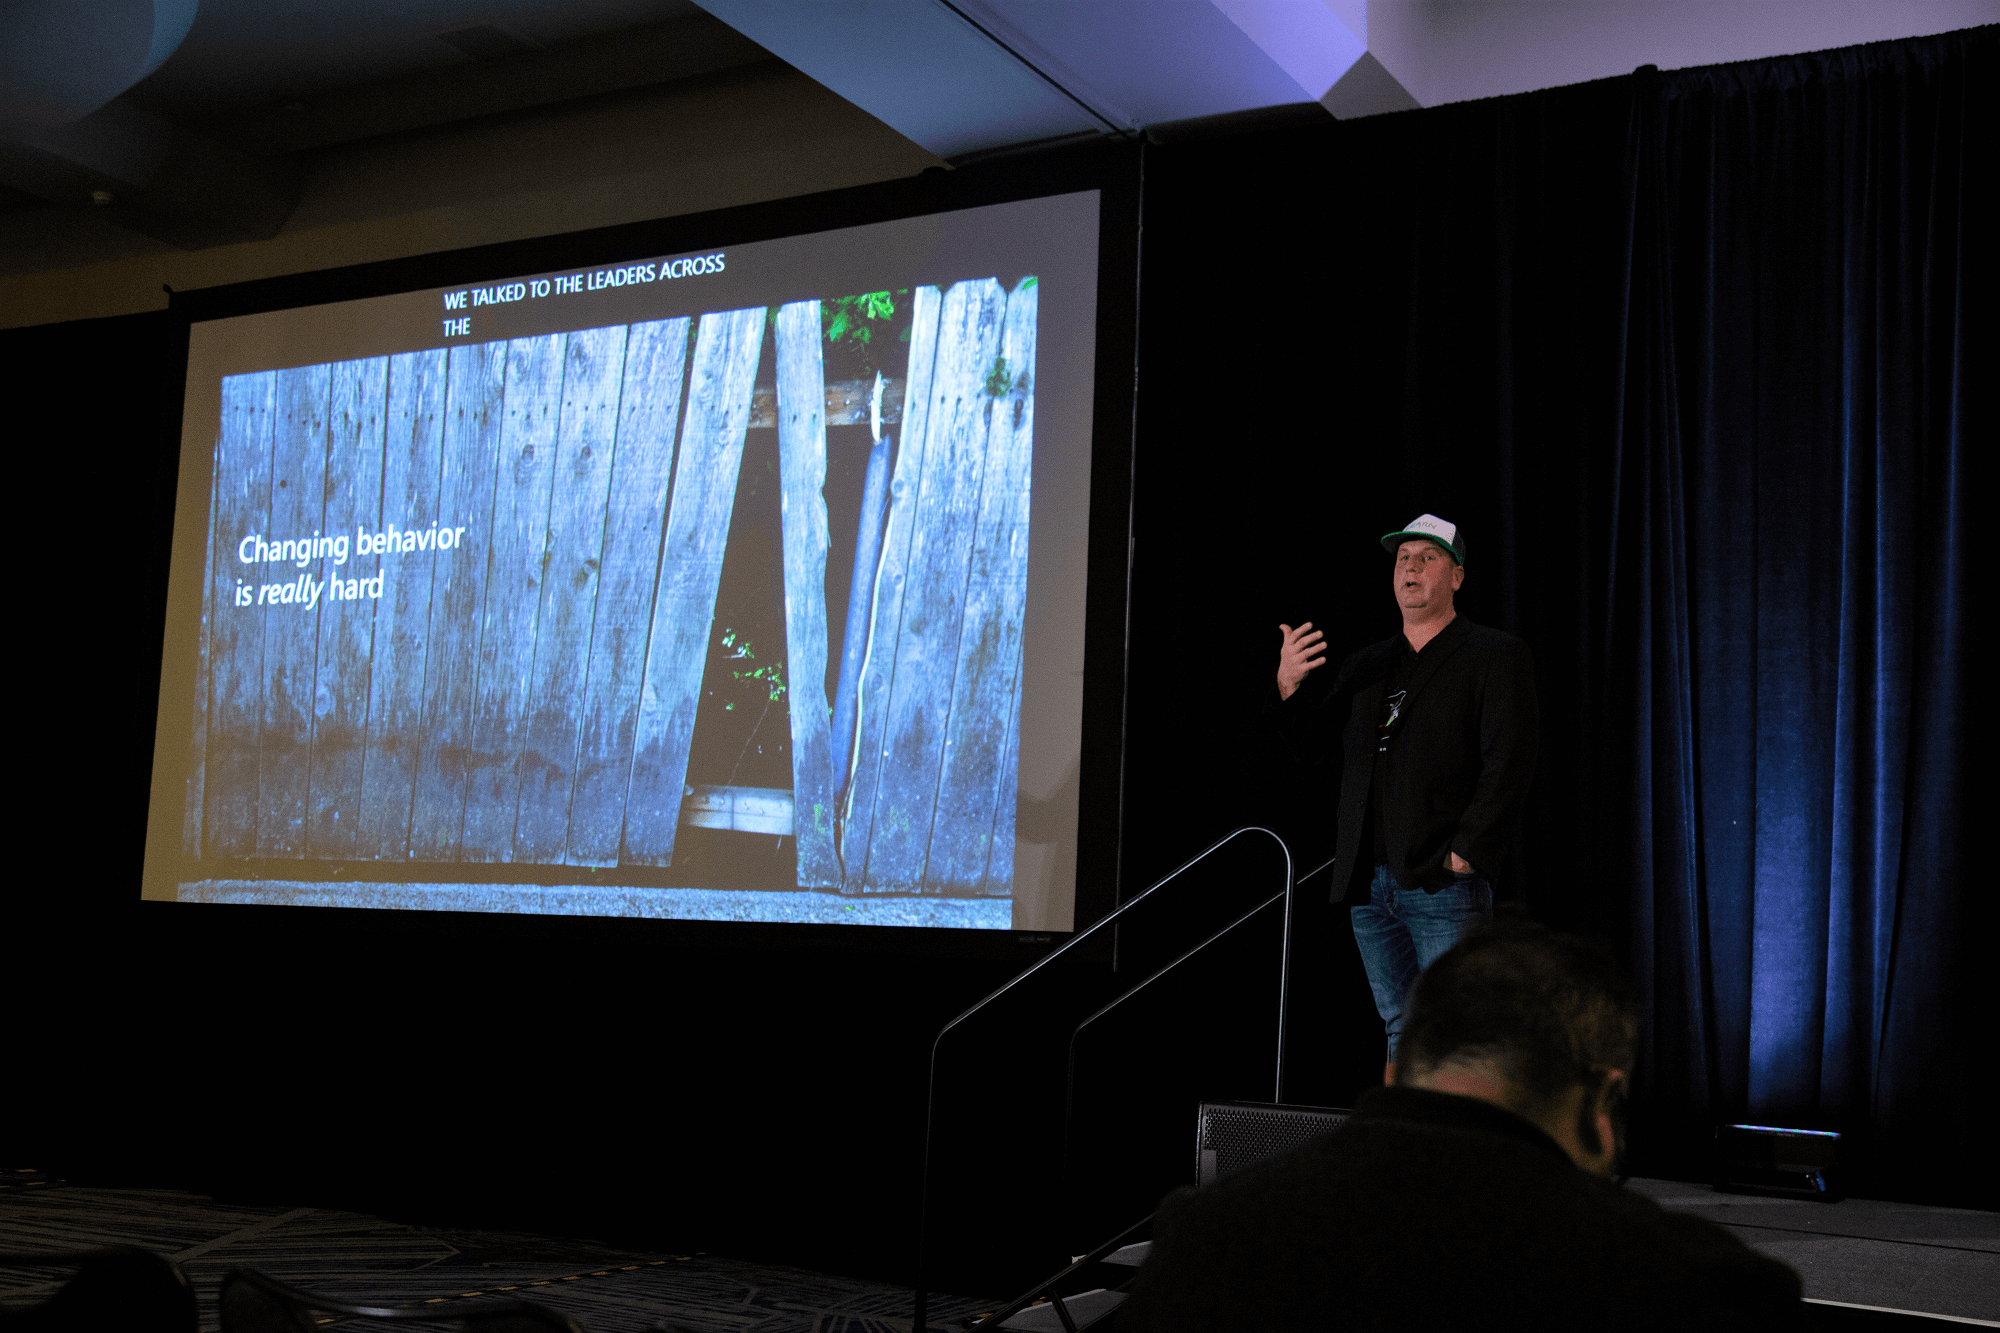 """Ken Sexsmith stands on stage as he gives his Ignite 2019 presentation. The slide reads, """"Changing behavior is really hard."""""""